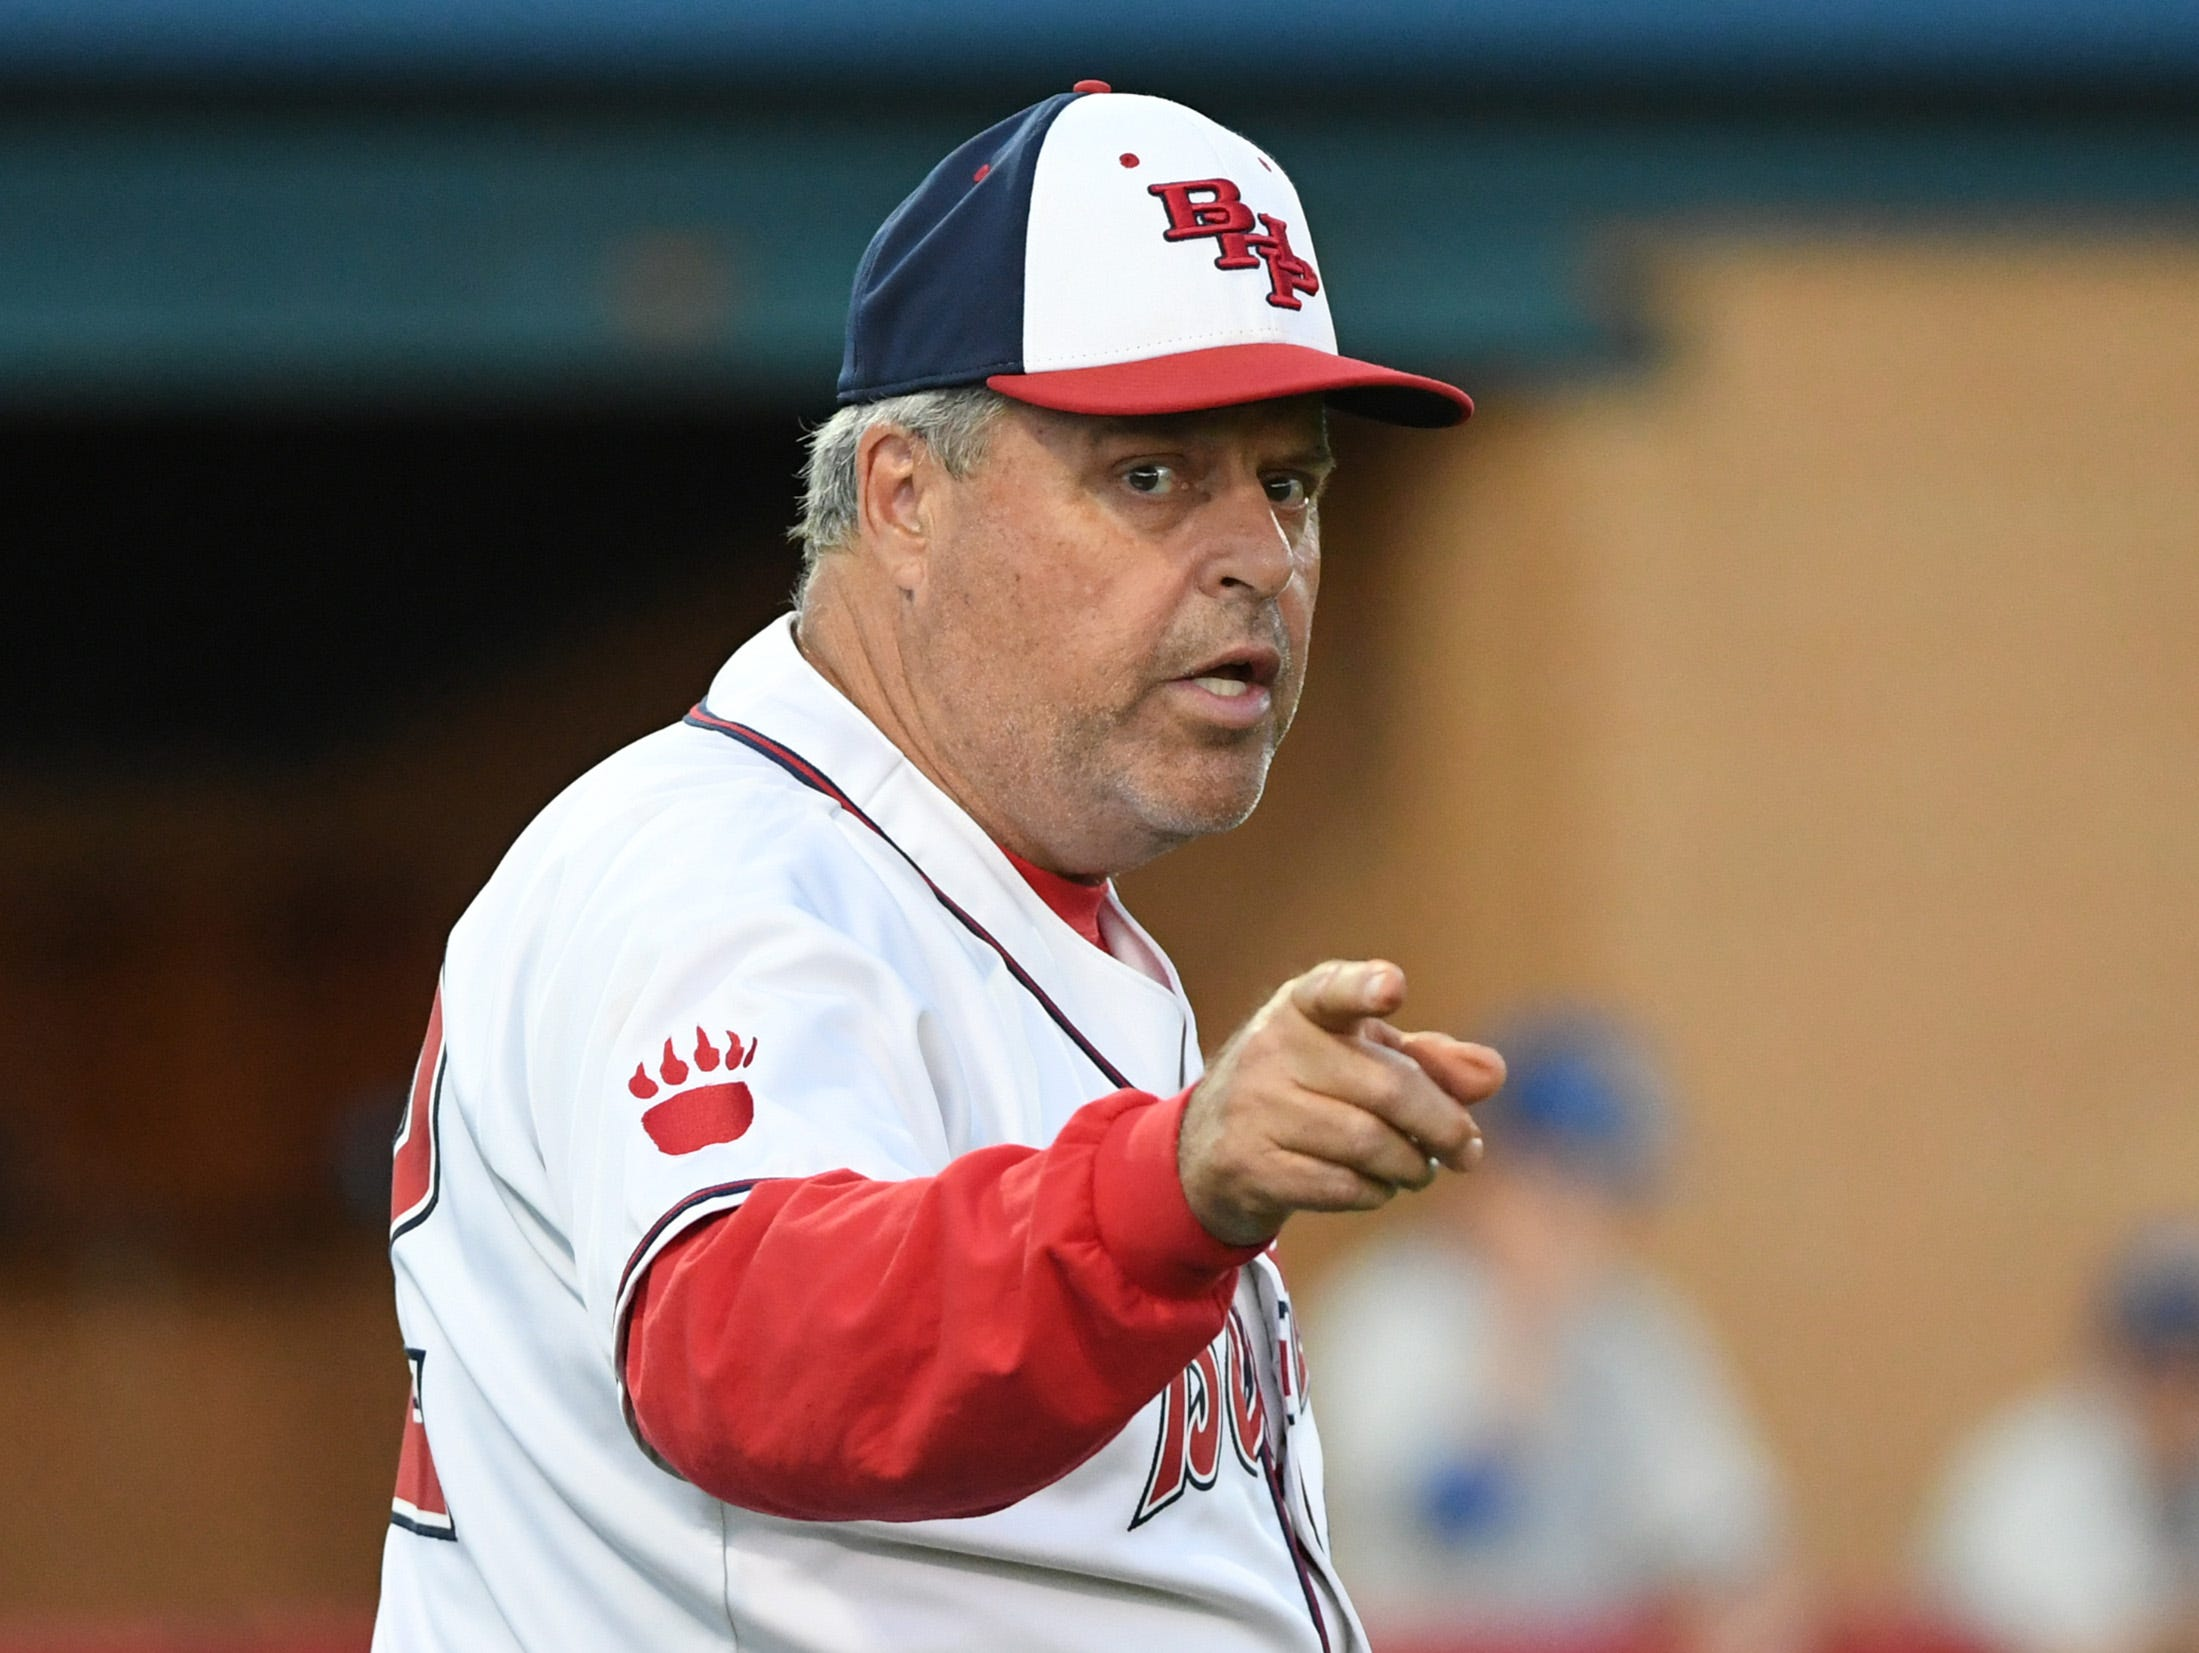 Belton Honea Path head coach Steve Williams calls for a relief pitcher against Wren Wednesday.